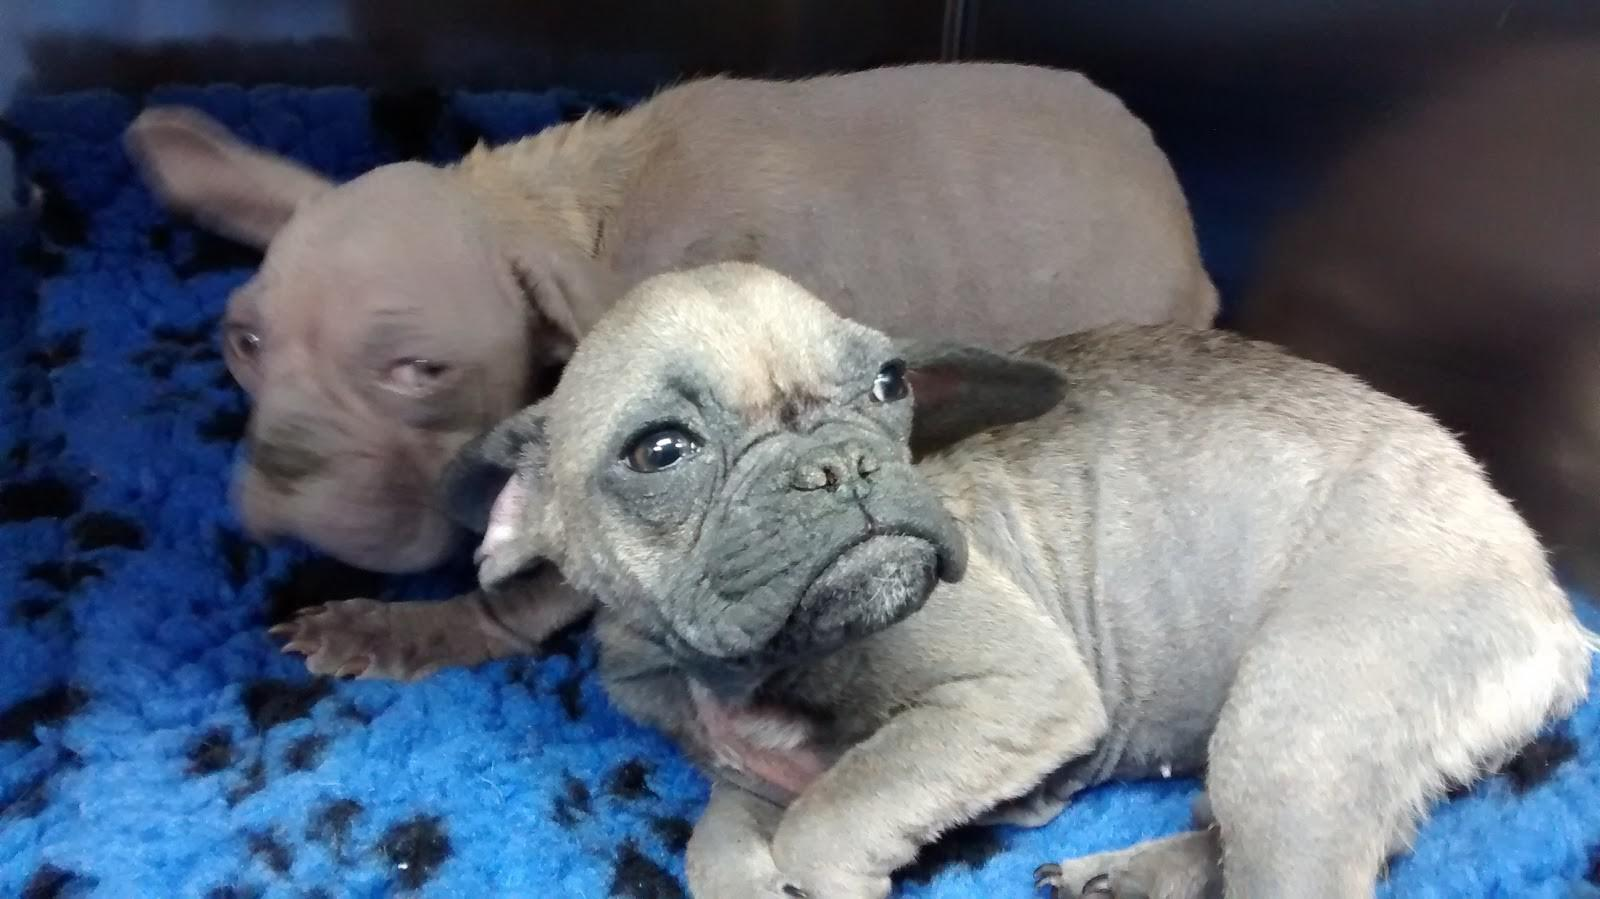 Two 'beautifully ugly' French bulldog pups discovered dumped in a cardboard box are turning heads for all the right reasons now. Tags: dog adoption French Bulldog puppy rescue dog RSPCA ugly